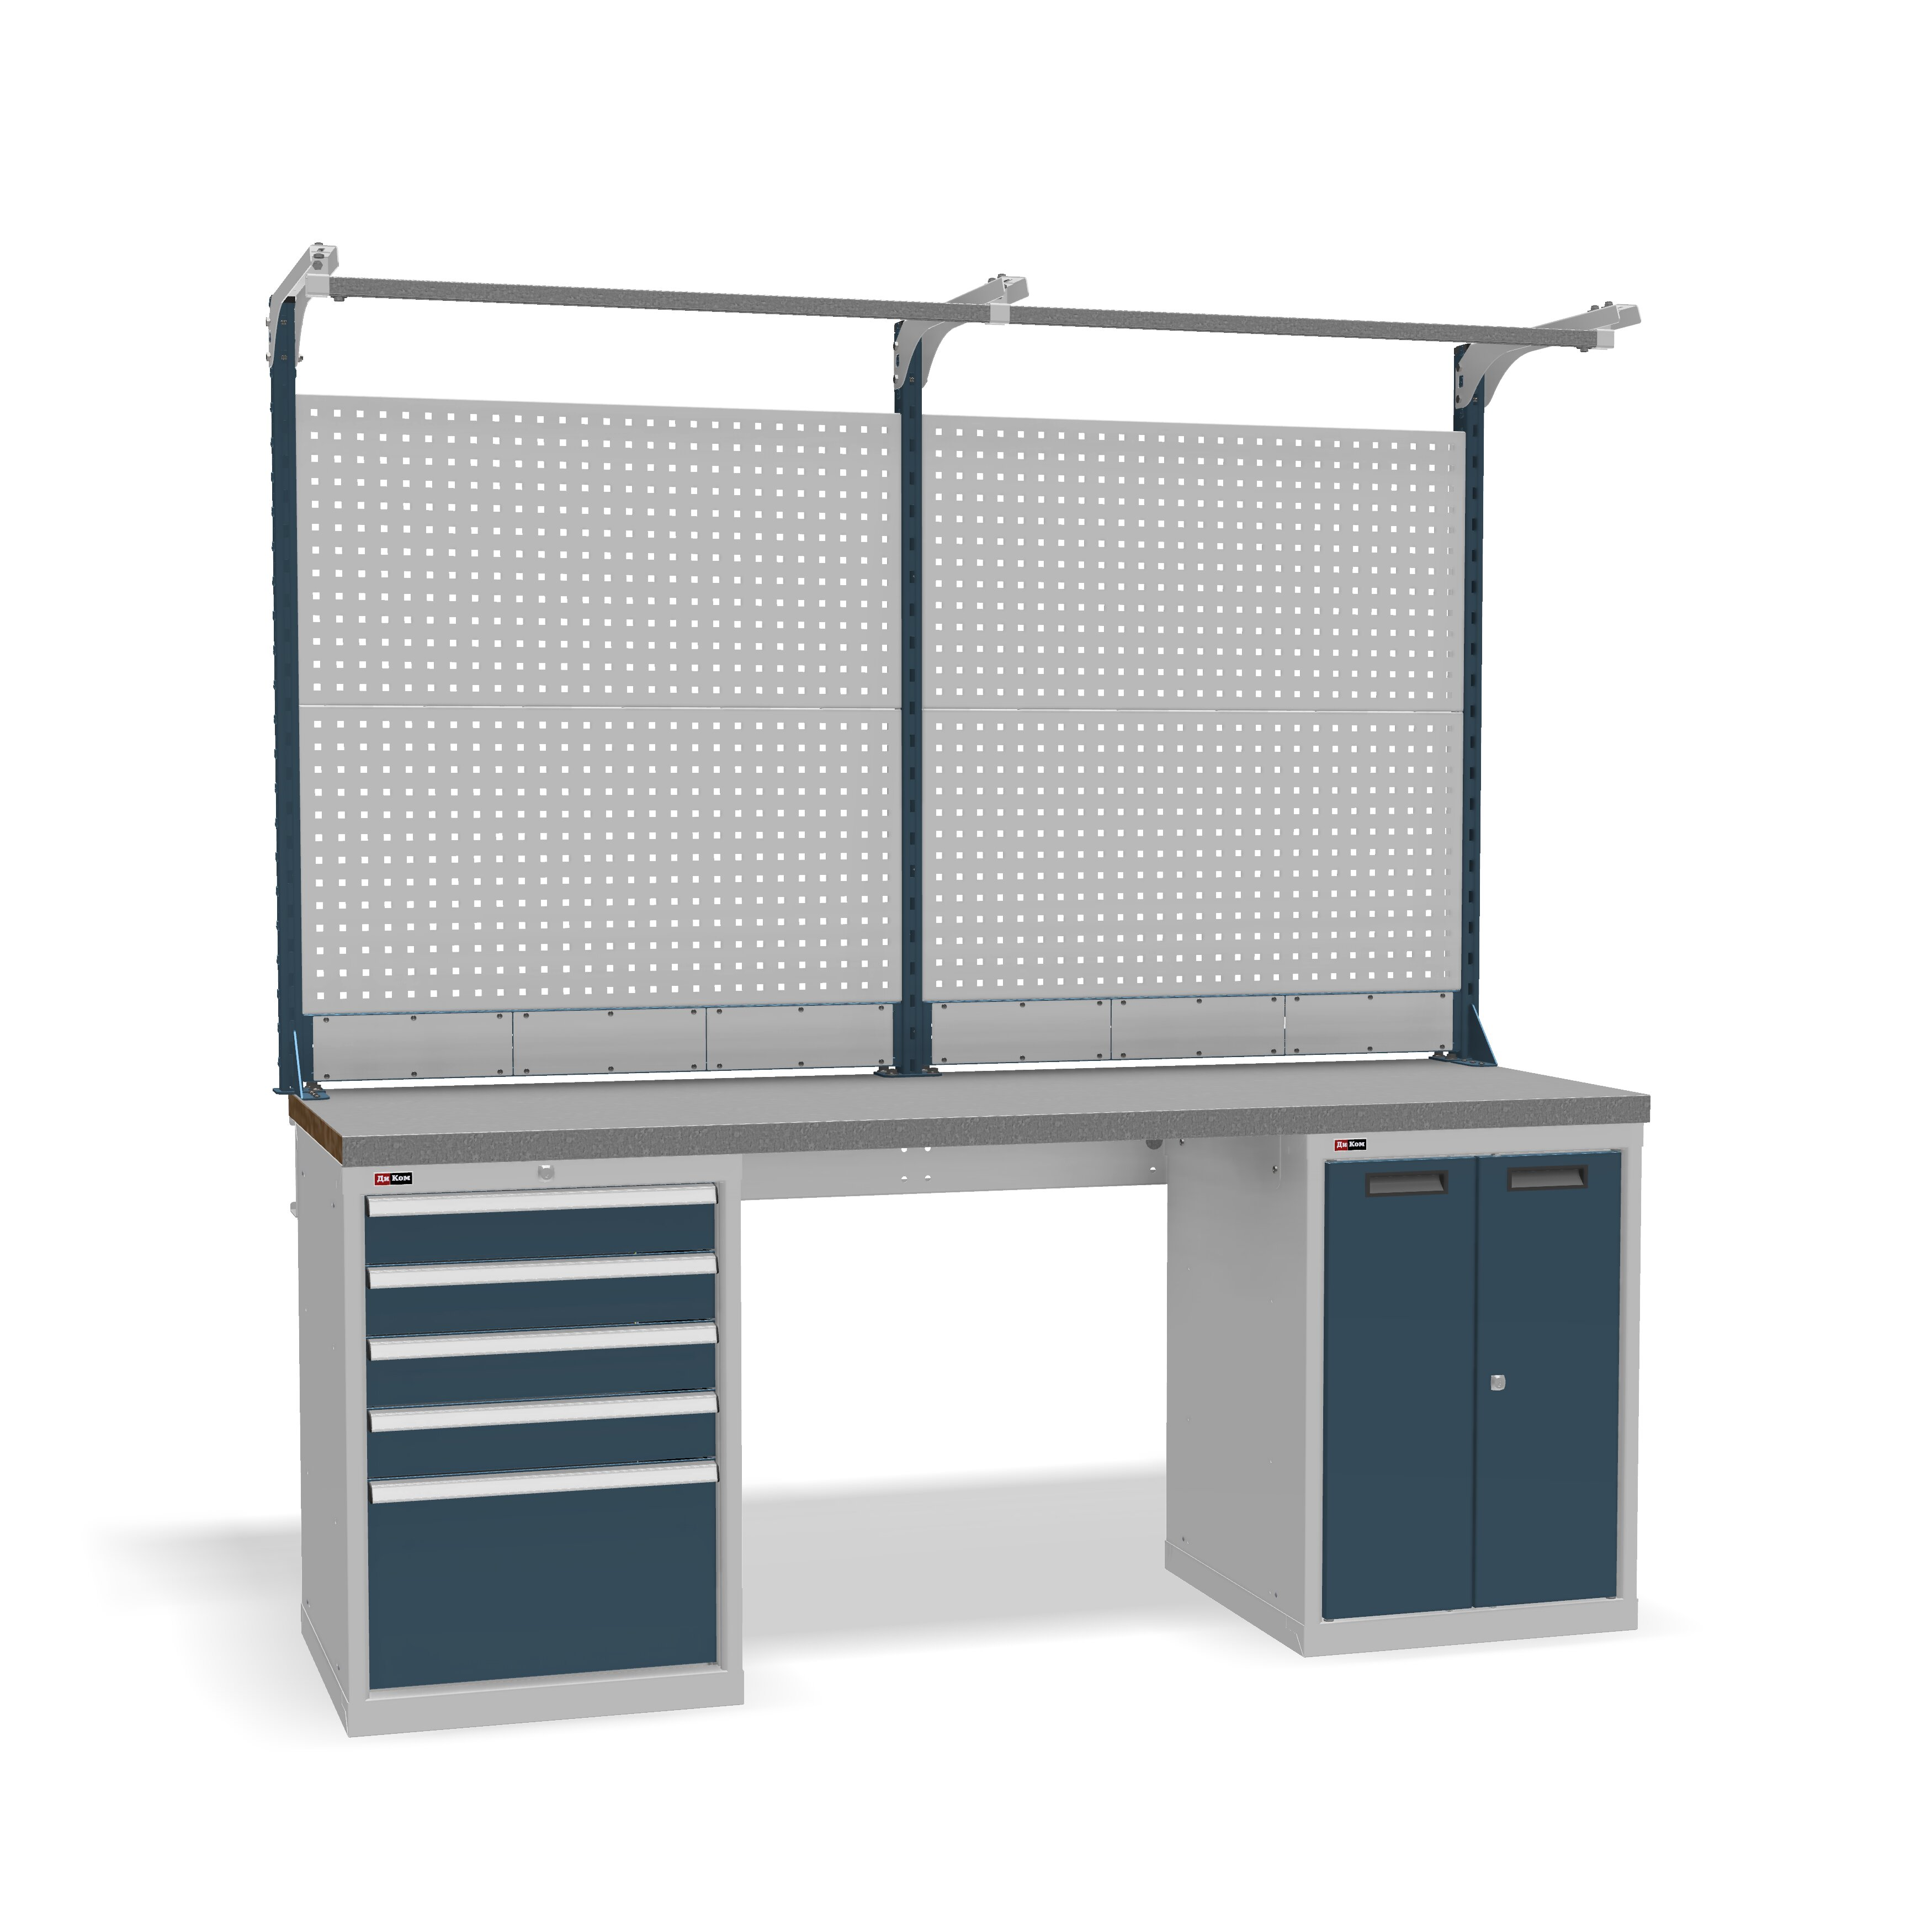 DiKom VS-200-07 Workbench + DiKom Perforated Panel VS-200-E3